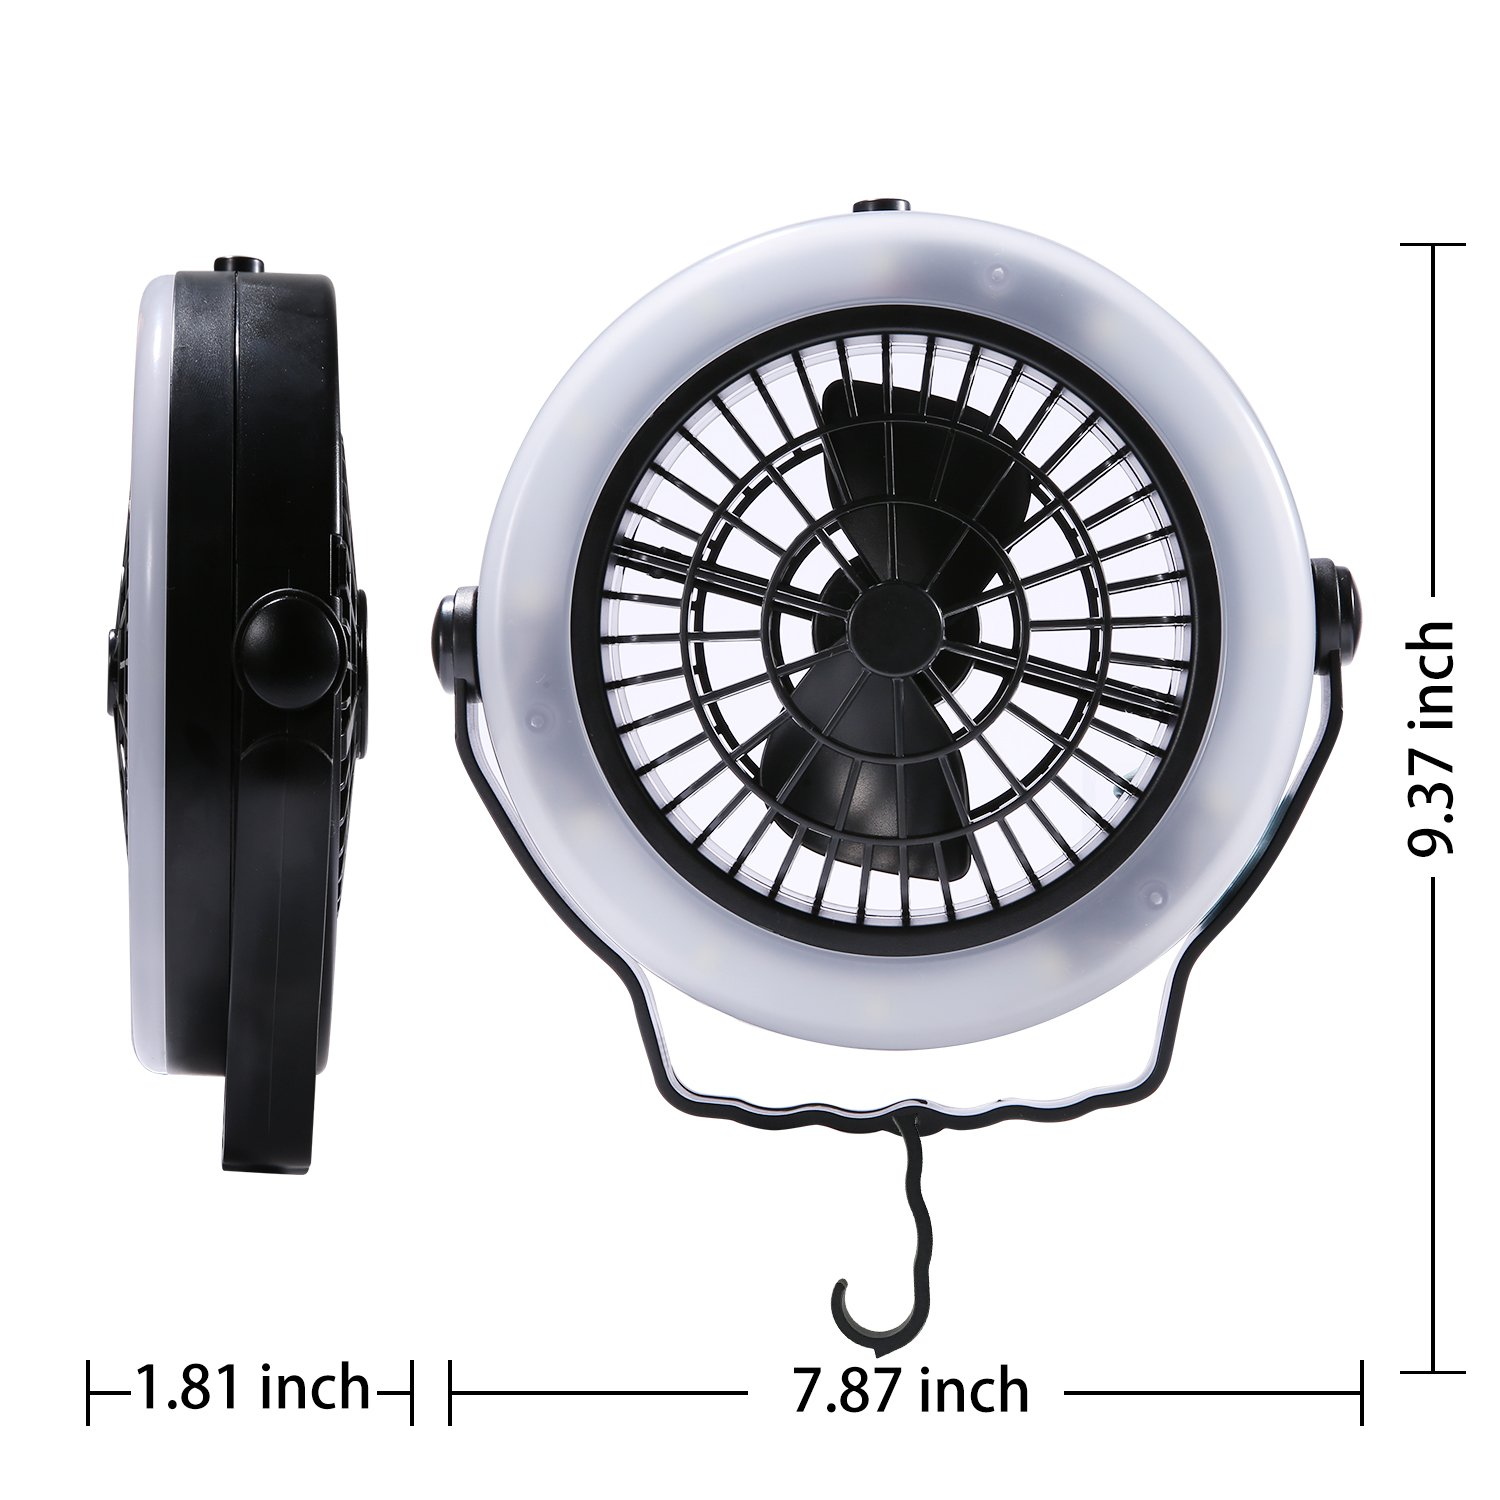 Tent Fan Light Led Camping Hiking Gear Equipment Usb Powered Outdoor Portable Ceiling Lamp Camping Equipment